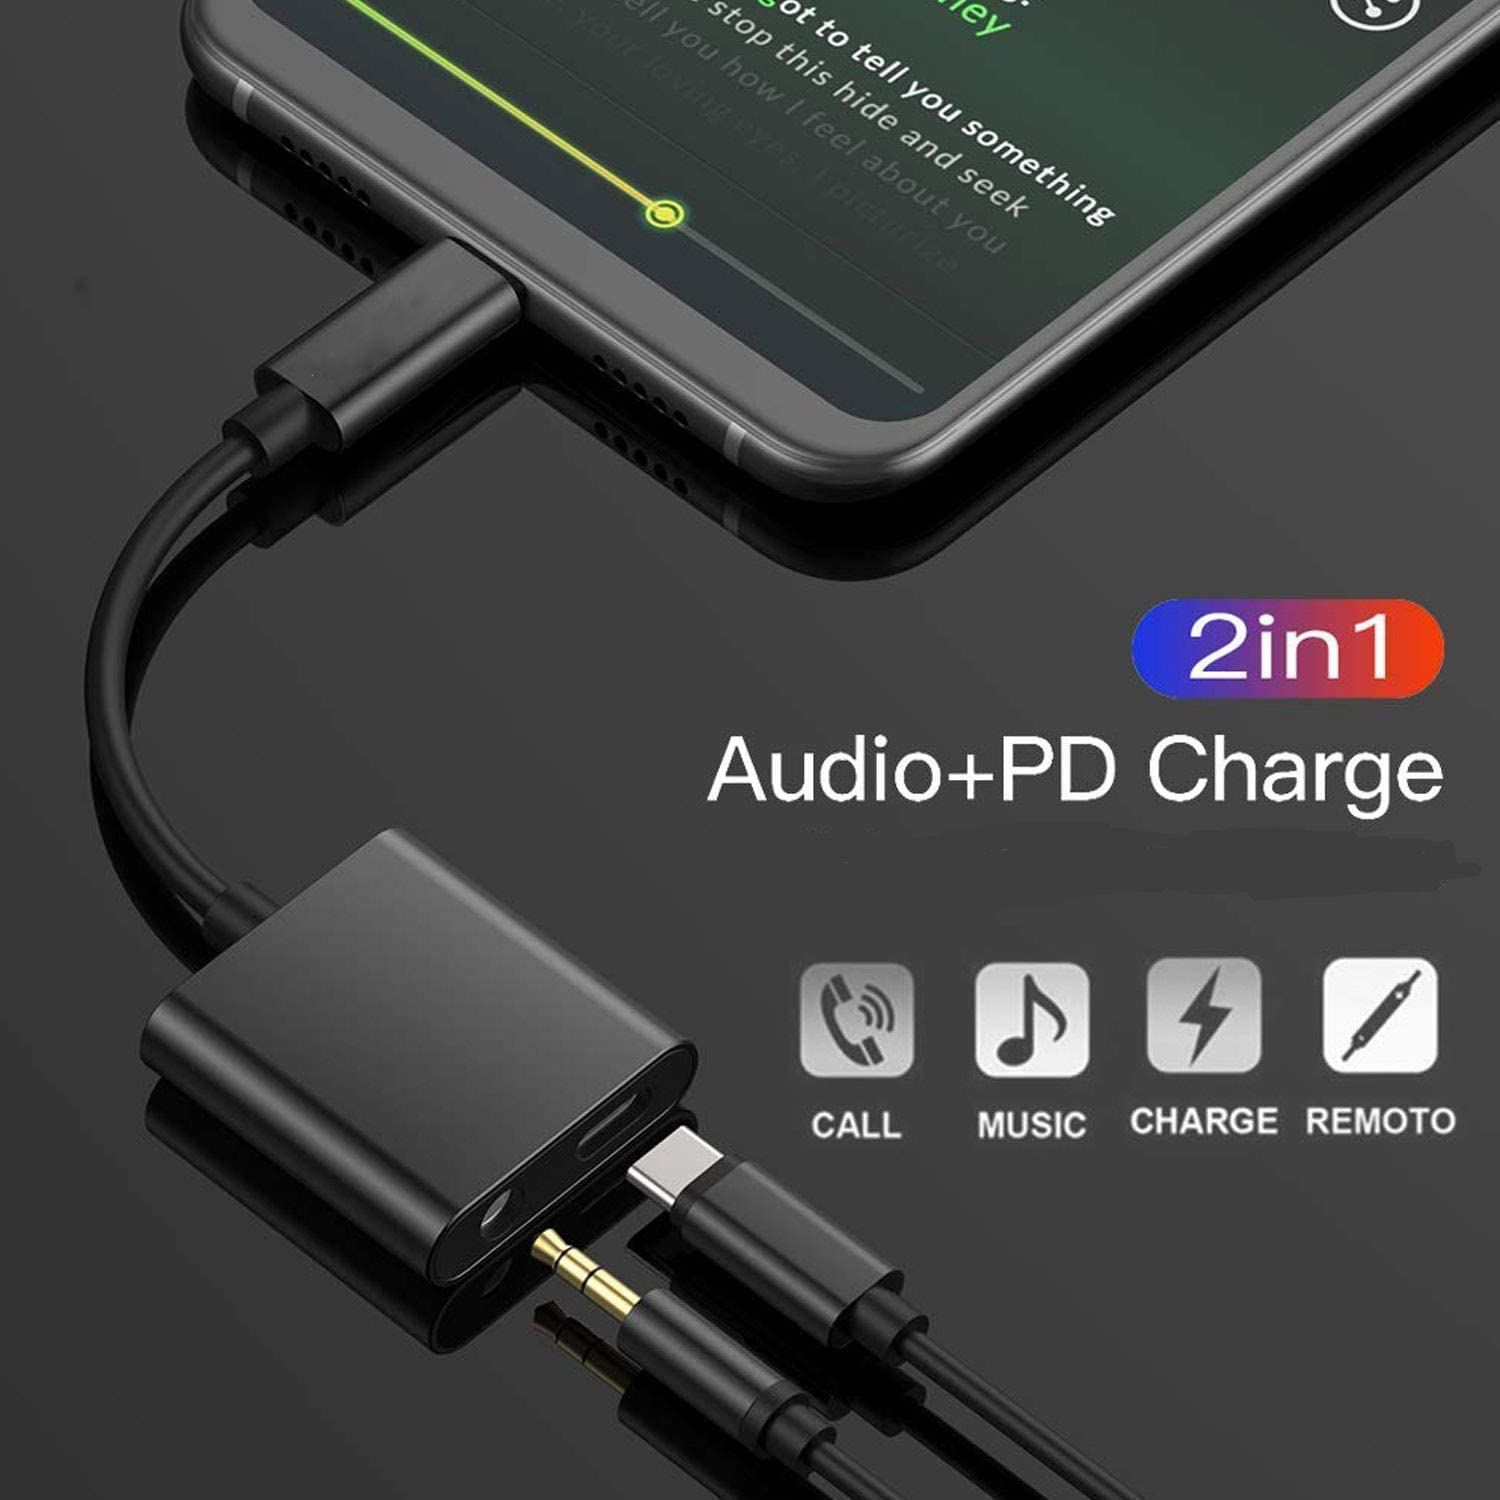 Galaxy Note 10//10+,iPad Pro 2018 HTC Essential Phone,XiaoMi and More USB C Phone USB C to 3.5mm Headphone Adapter with Fast Charging Compatible for Pixel 4 4XL 3 3XL 2 2XL Not for Moto and OnePlus